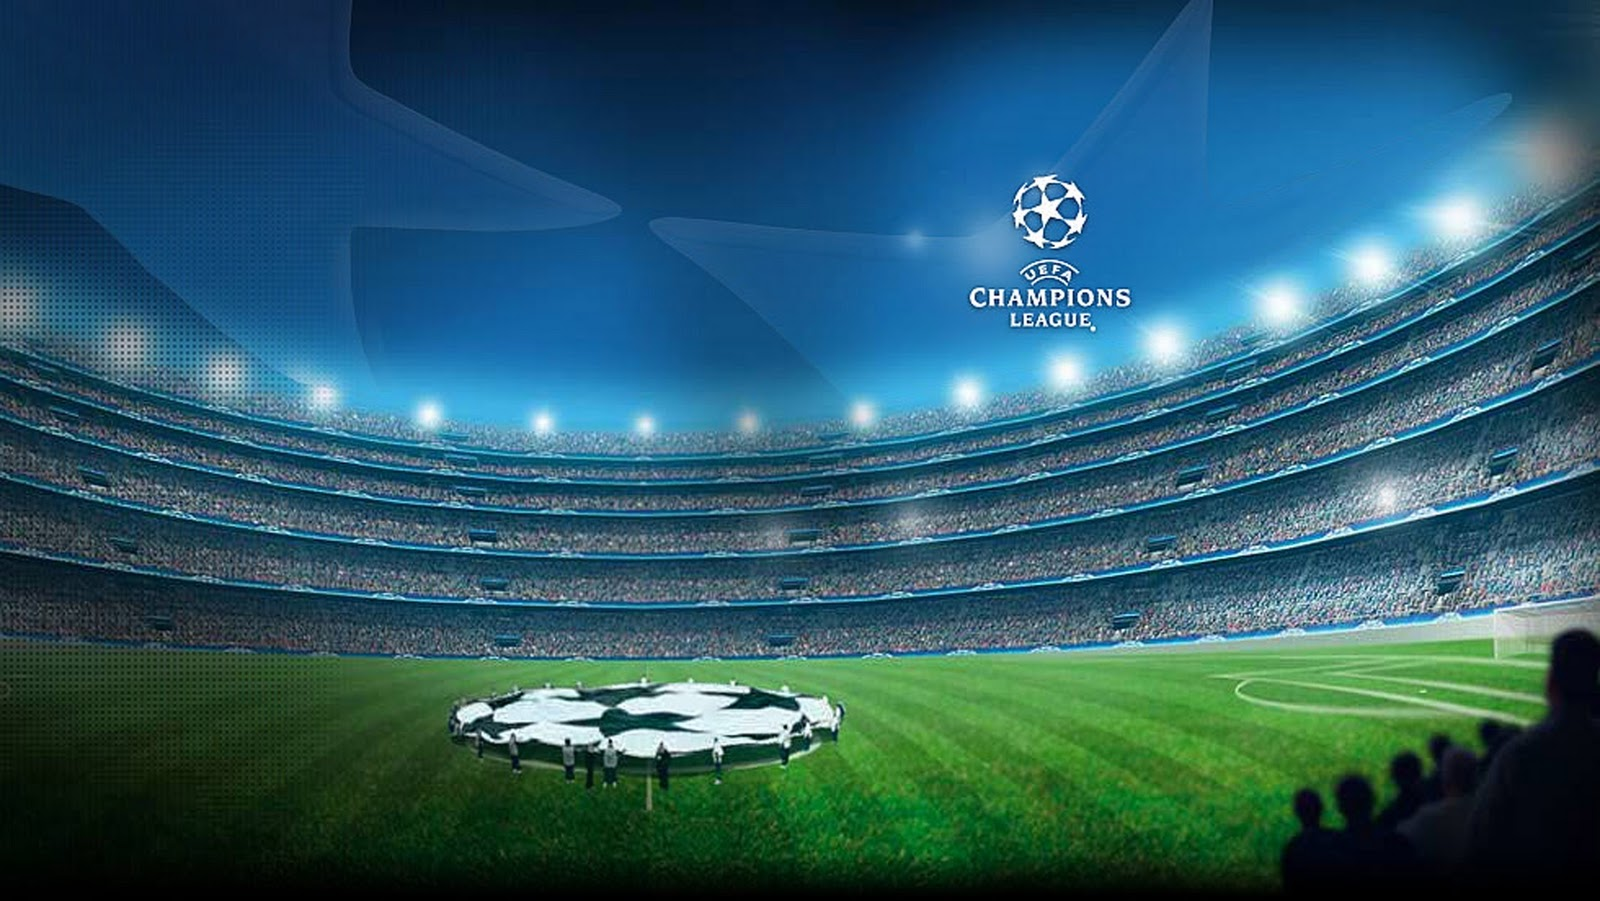 Champions League. Matchday 2 fixtures